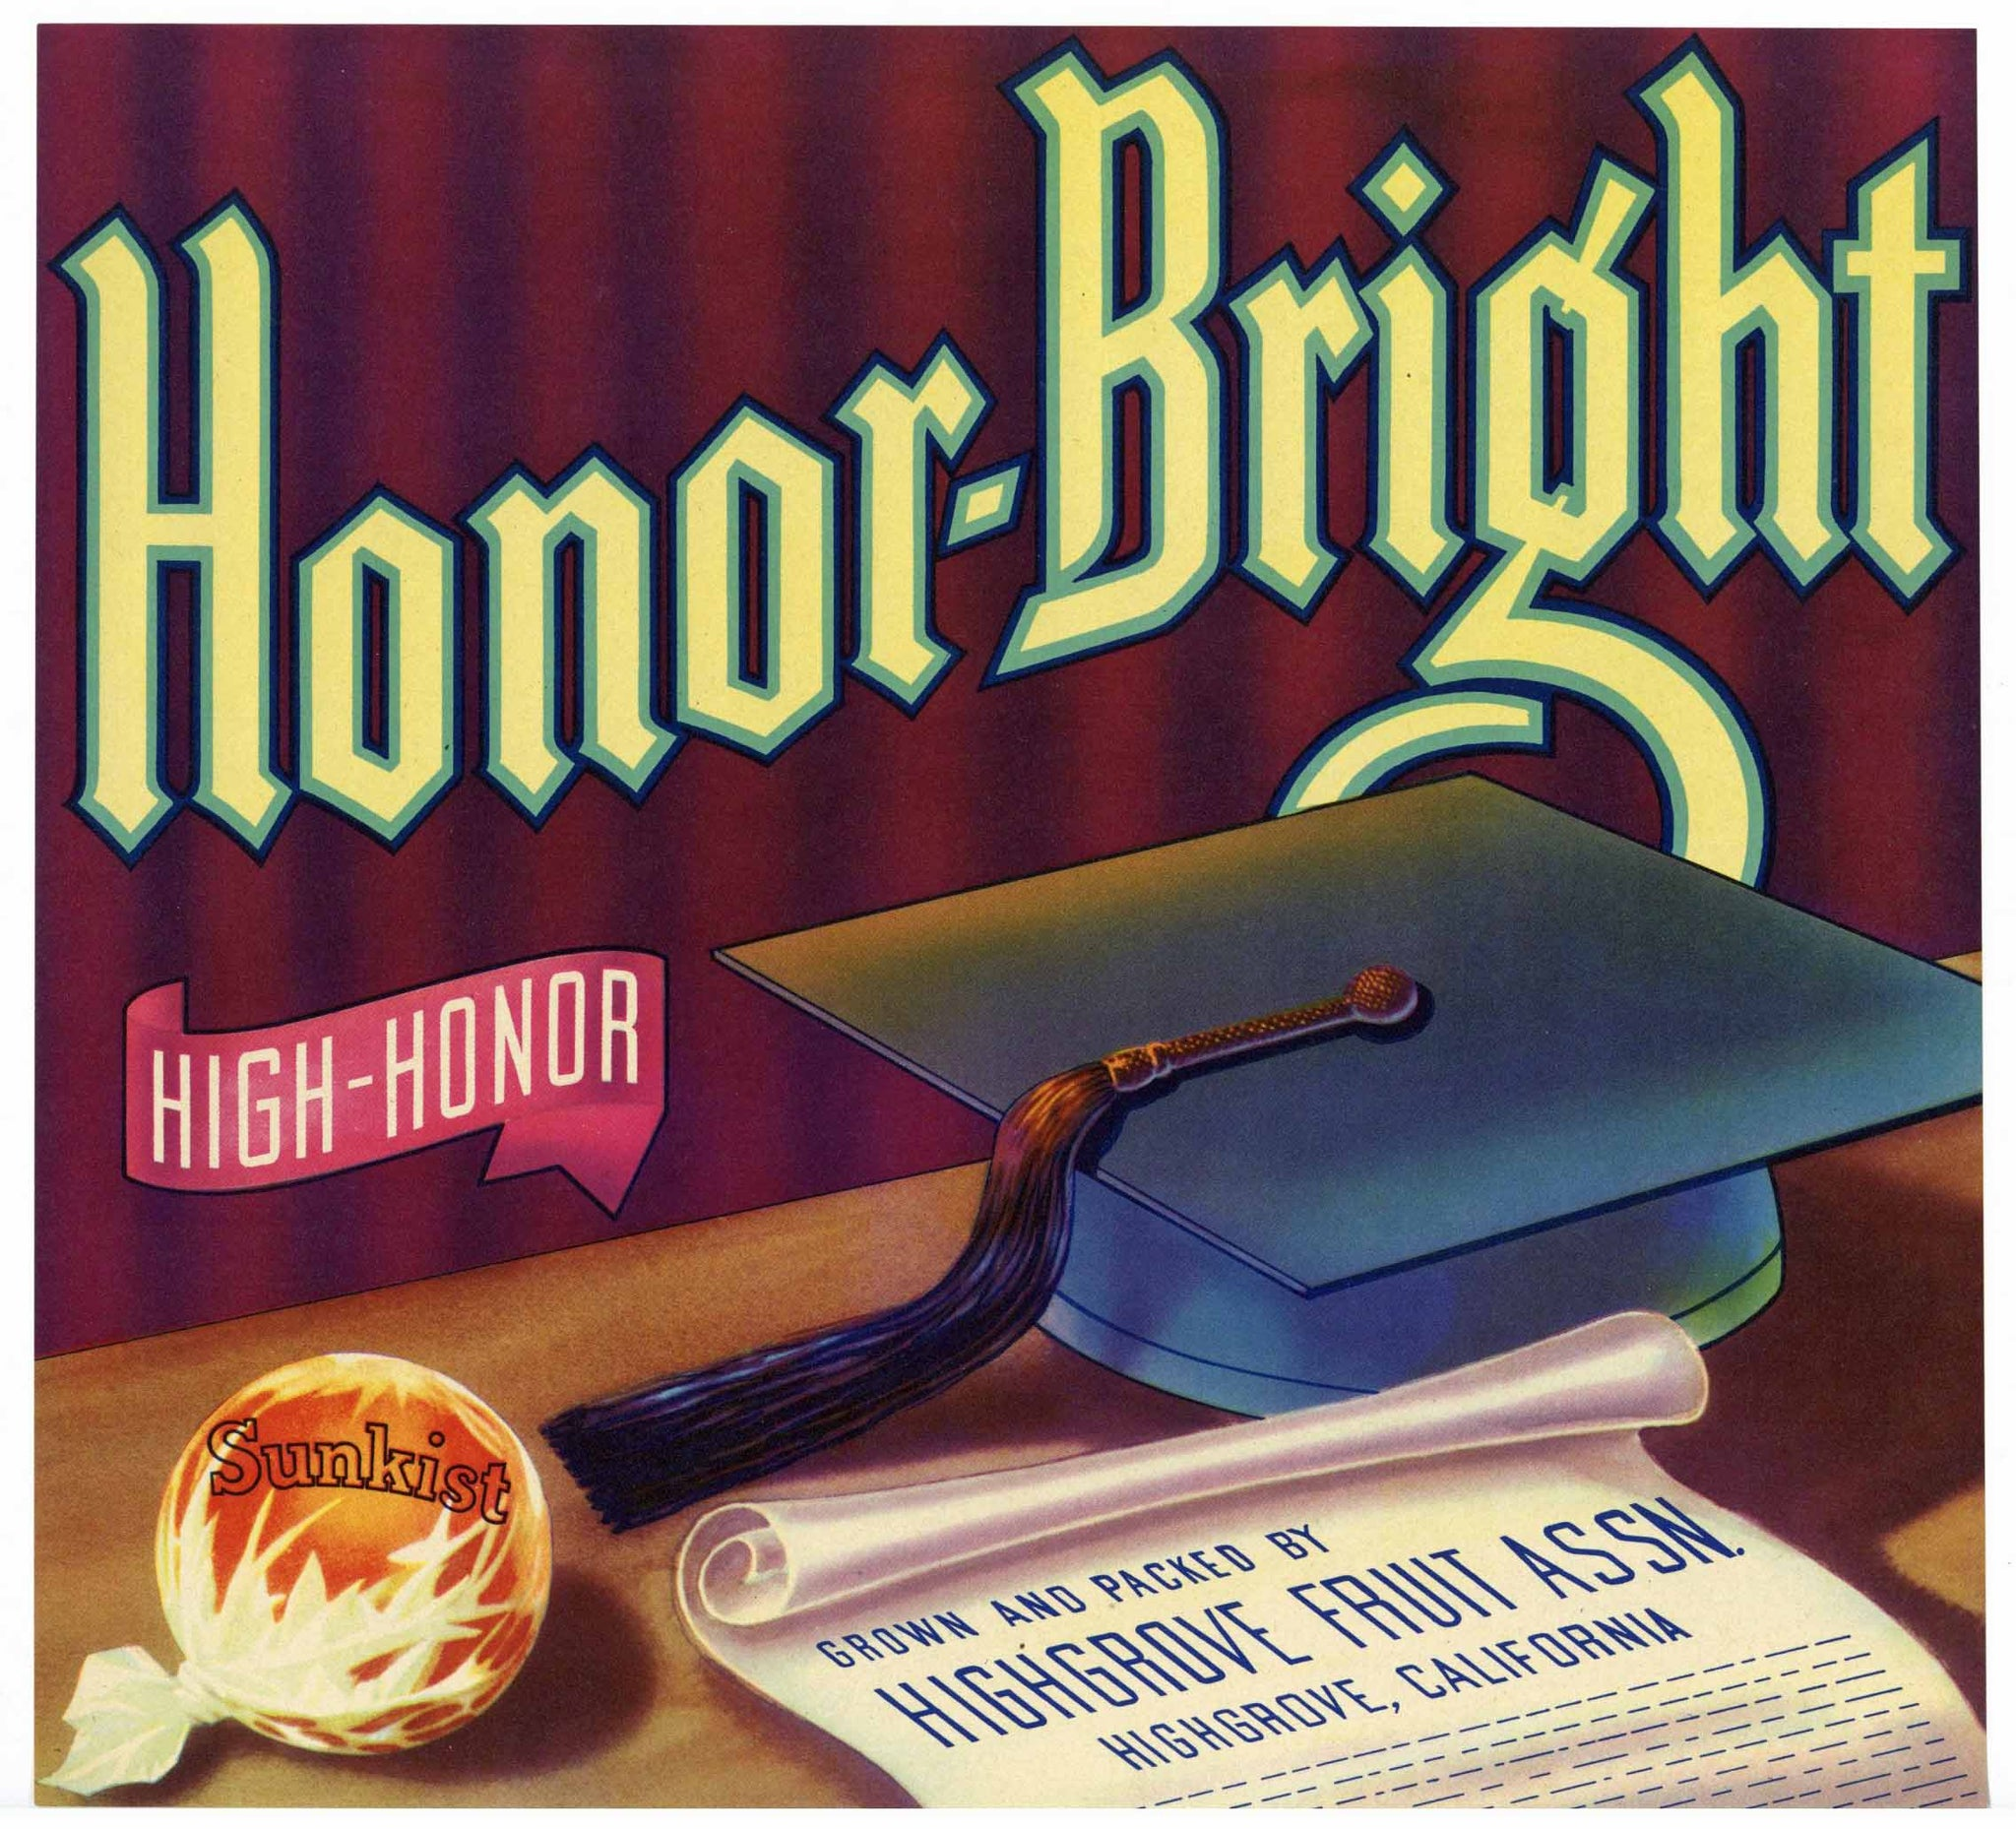 HONOR-BRIGHT Brand Vintage Orange Crate Label (o085)